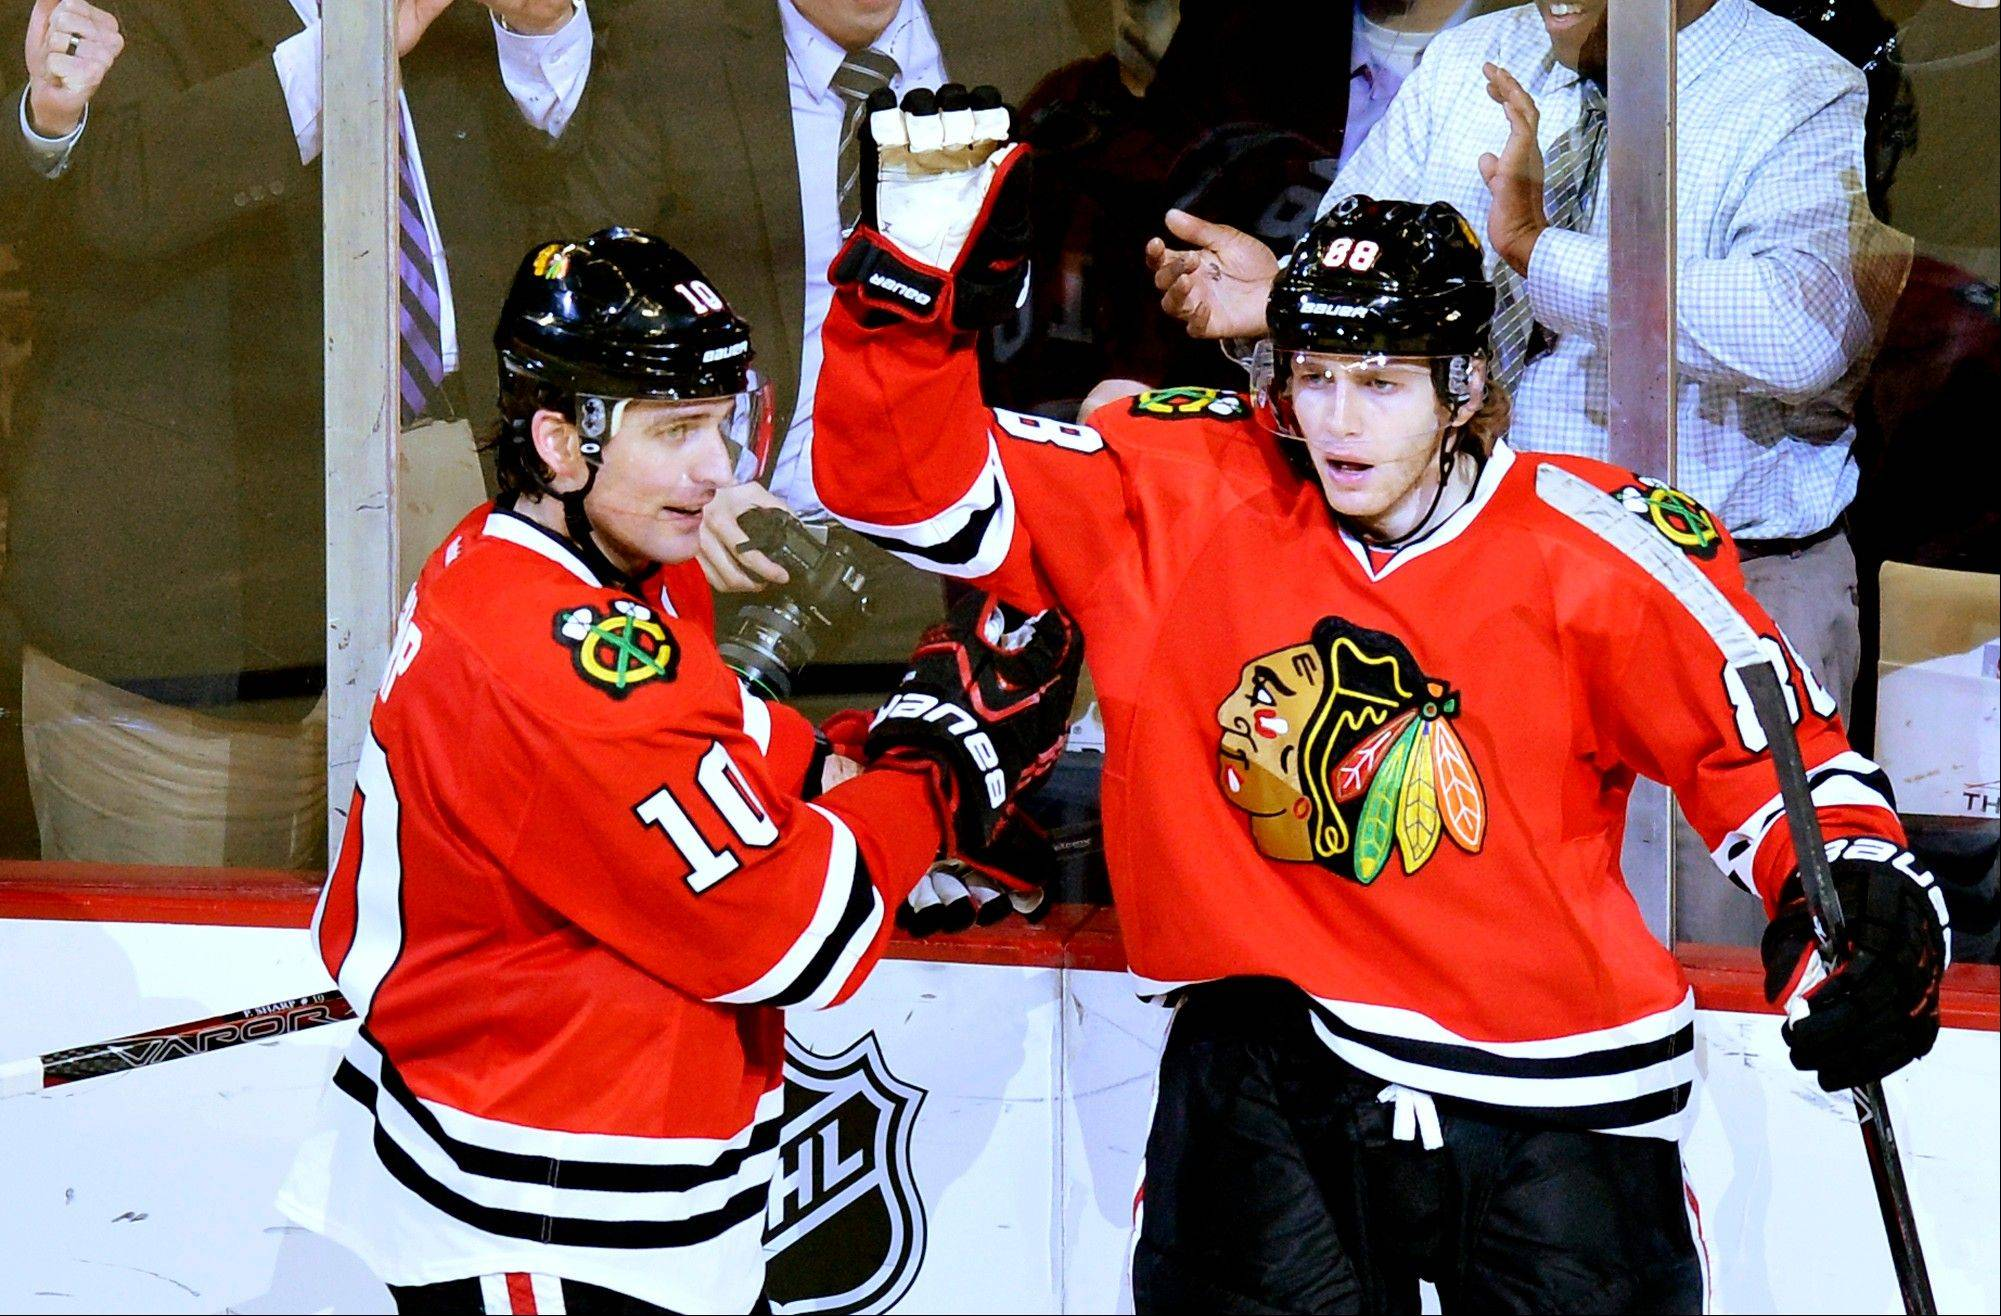 Patrick Sharp, left, Patrick Kane and the rest of the Blackhawks have been a red-hot story, but it probably won't mean much in the grand scheme of sports if history is any indication.